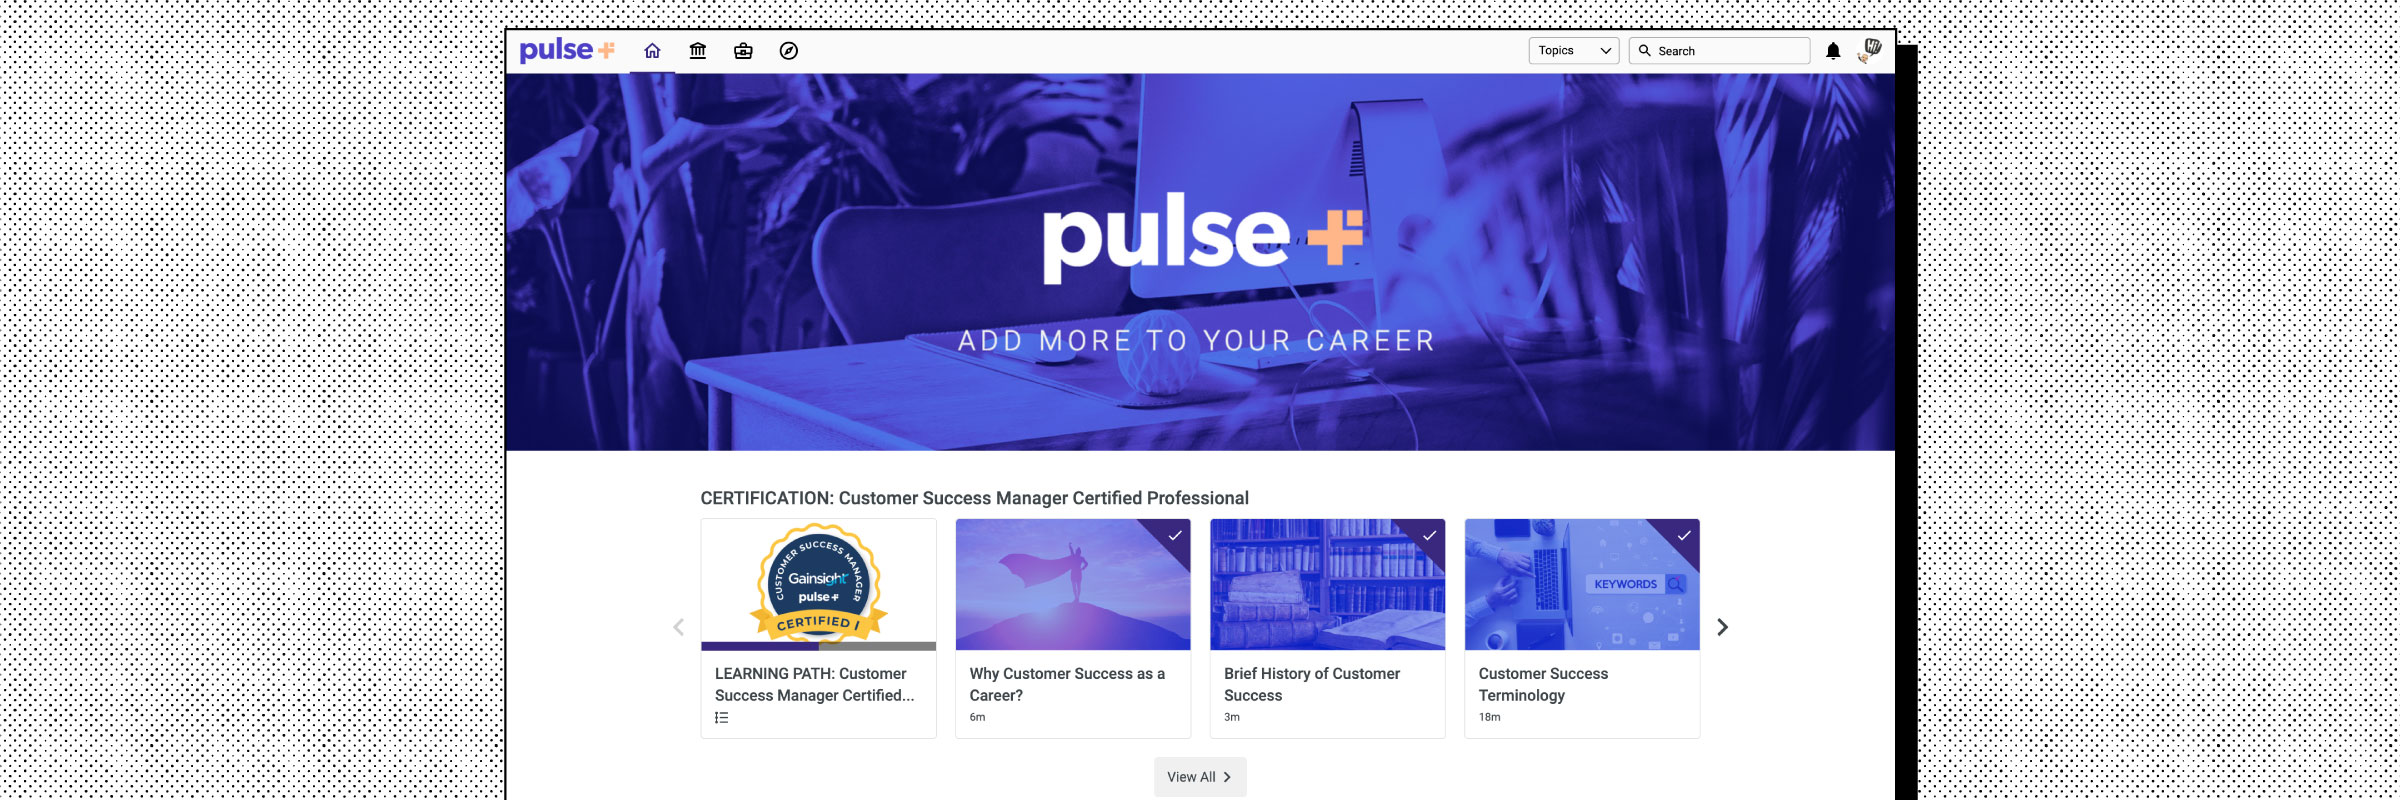 Homepage example of the Gainsight Pulse Plus website on the Intellum Platform